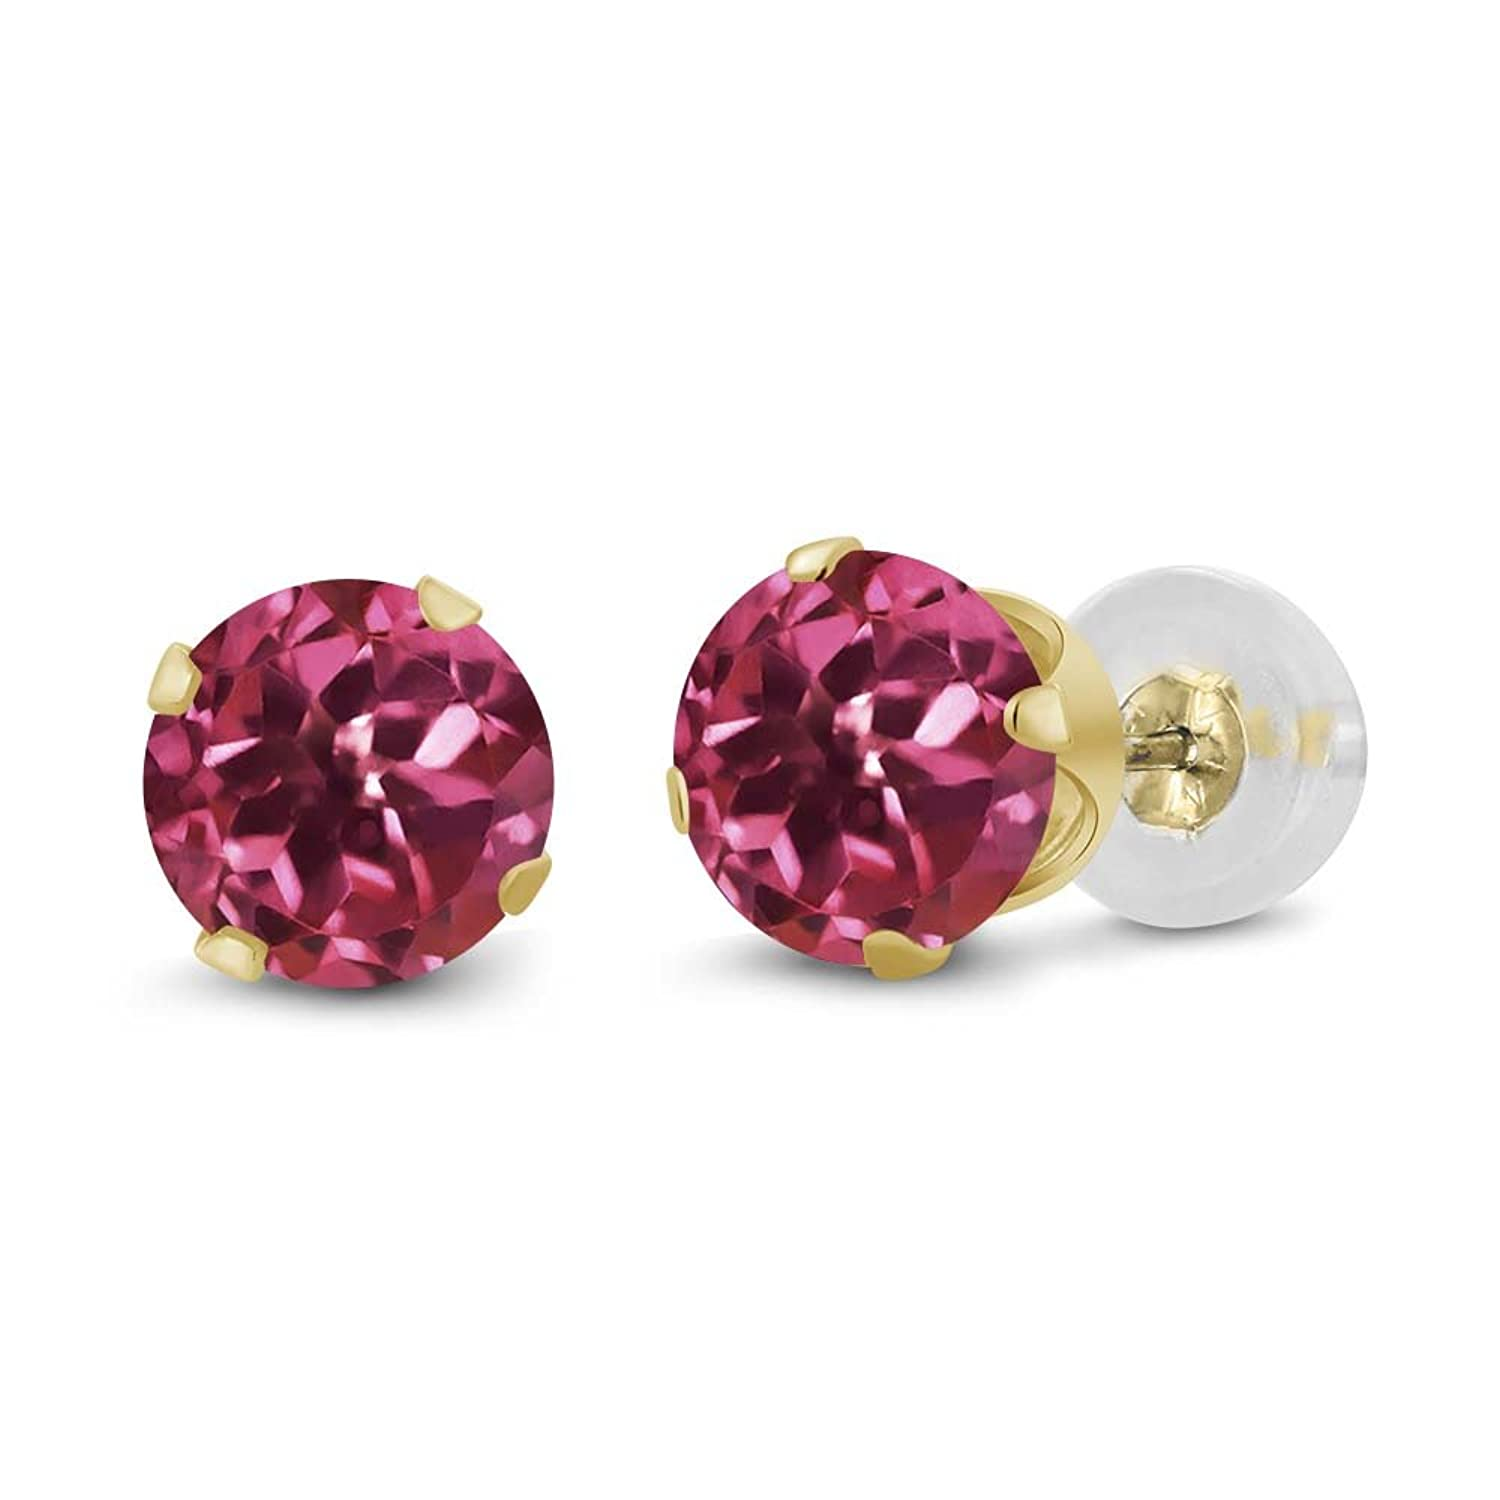 0.48 Ct Round 4mm Pink Tourmaline 14K Yellow Gold Stud Earrings